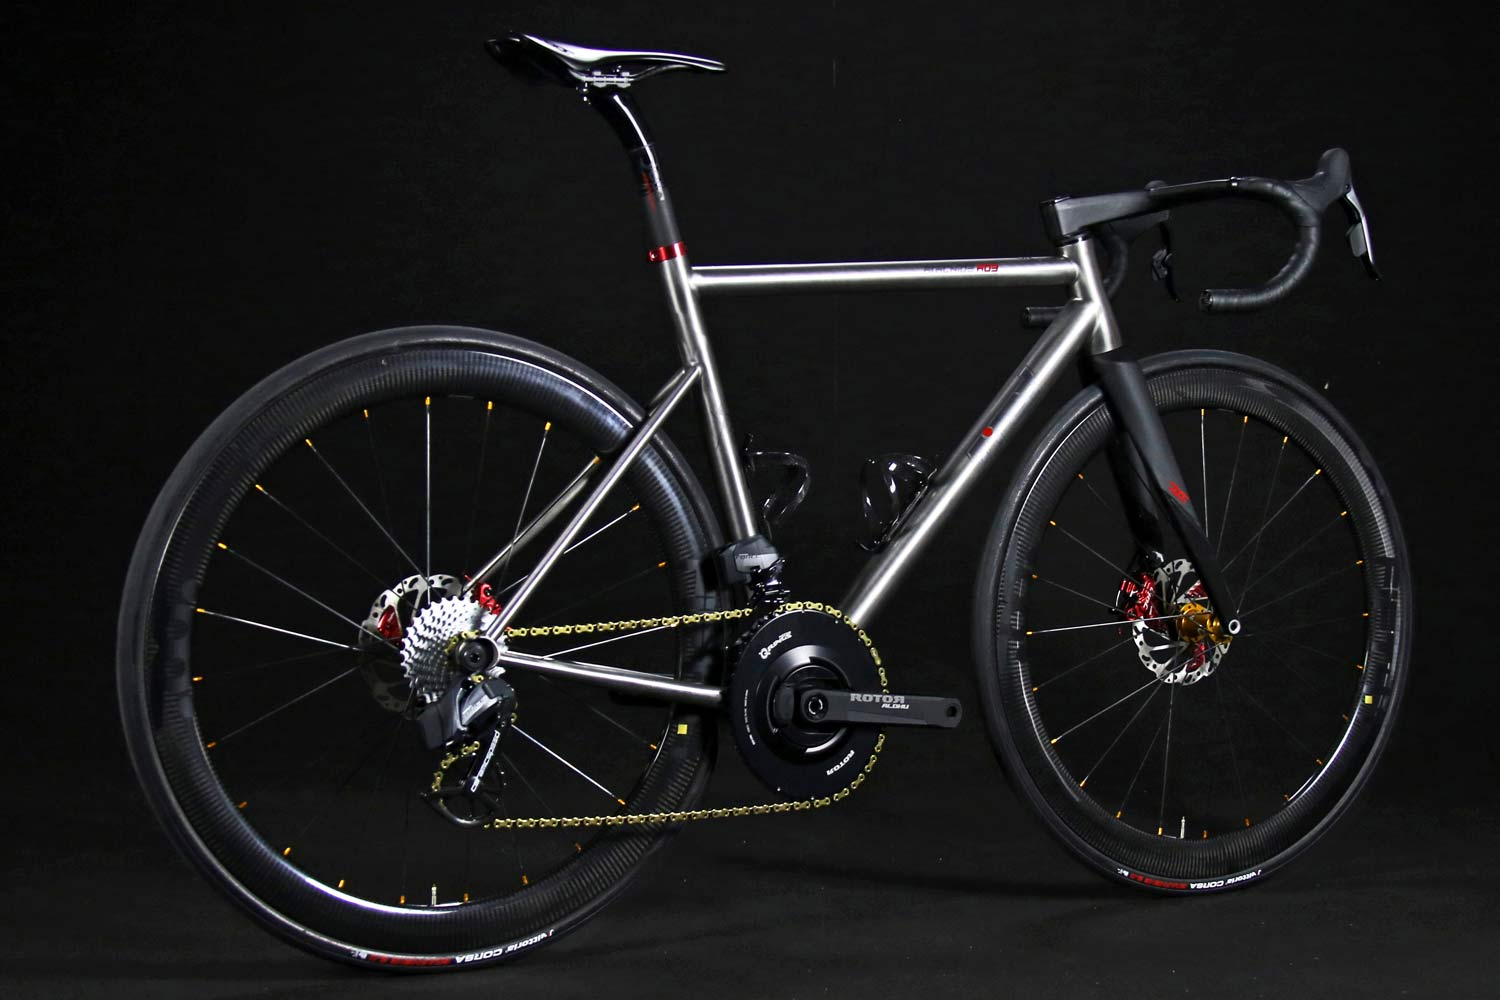 TRed Arcanide A03 Venti to road bike, fully-integrated internal cable routing custom titanium road bike,angled complete